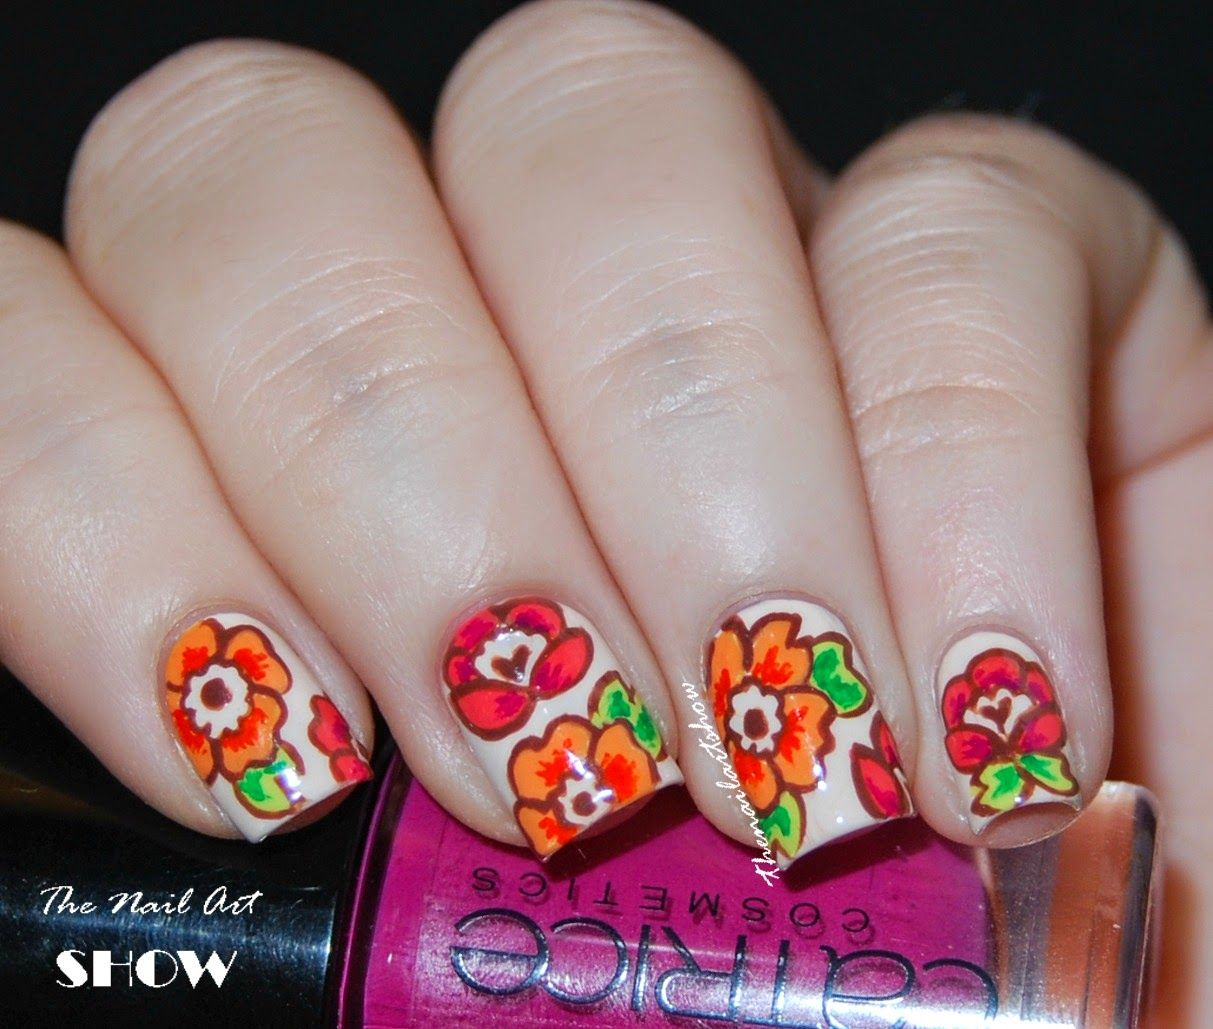 The Nail Art Show: Neon Summer Time Floral | Nailart: Hand-Painted ...